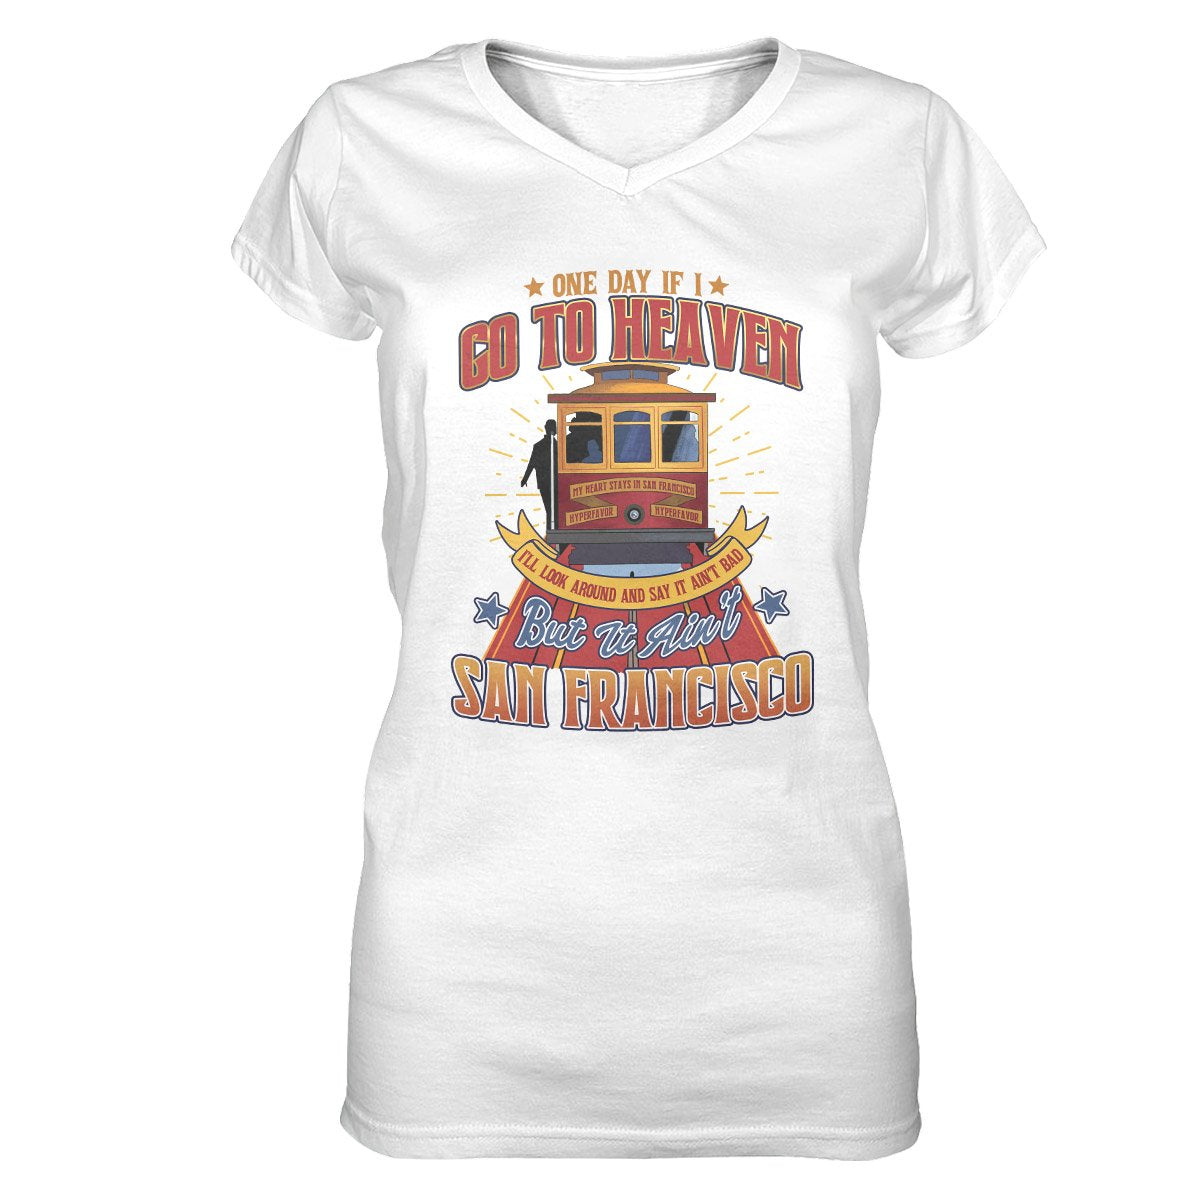 Heaven Ain't Bad But It Ain't San Francisco EZ30 0502 Women V-neck T-shirt